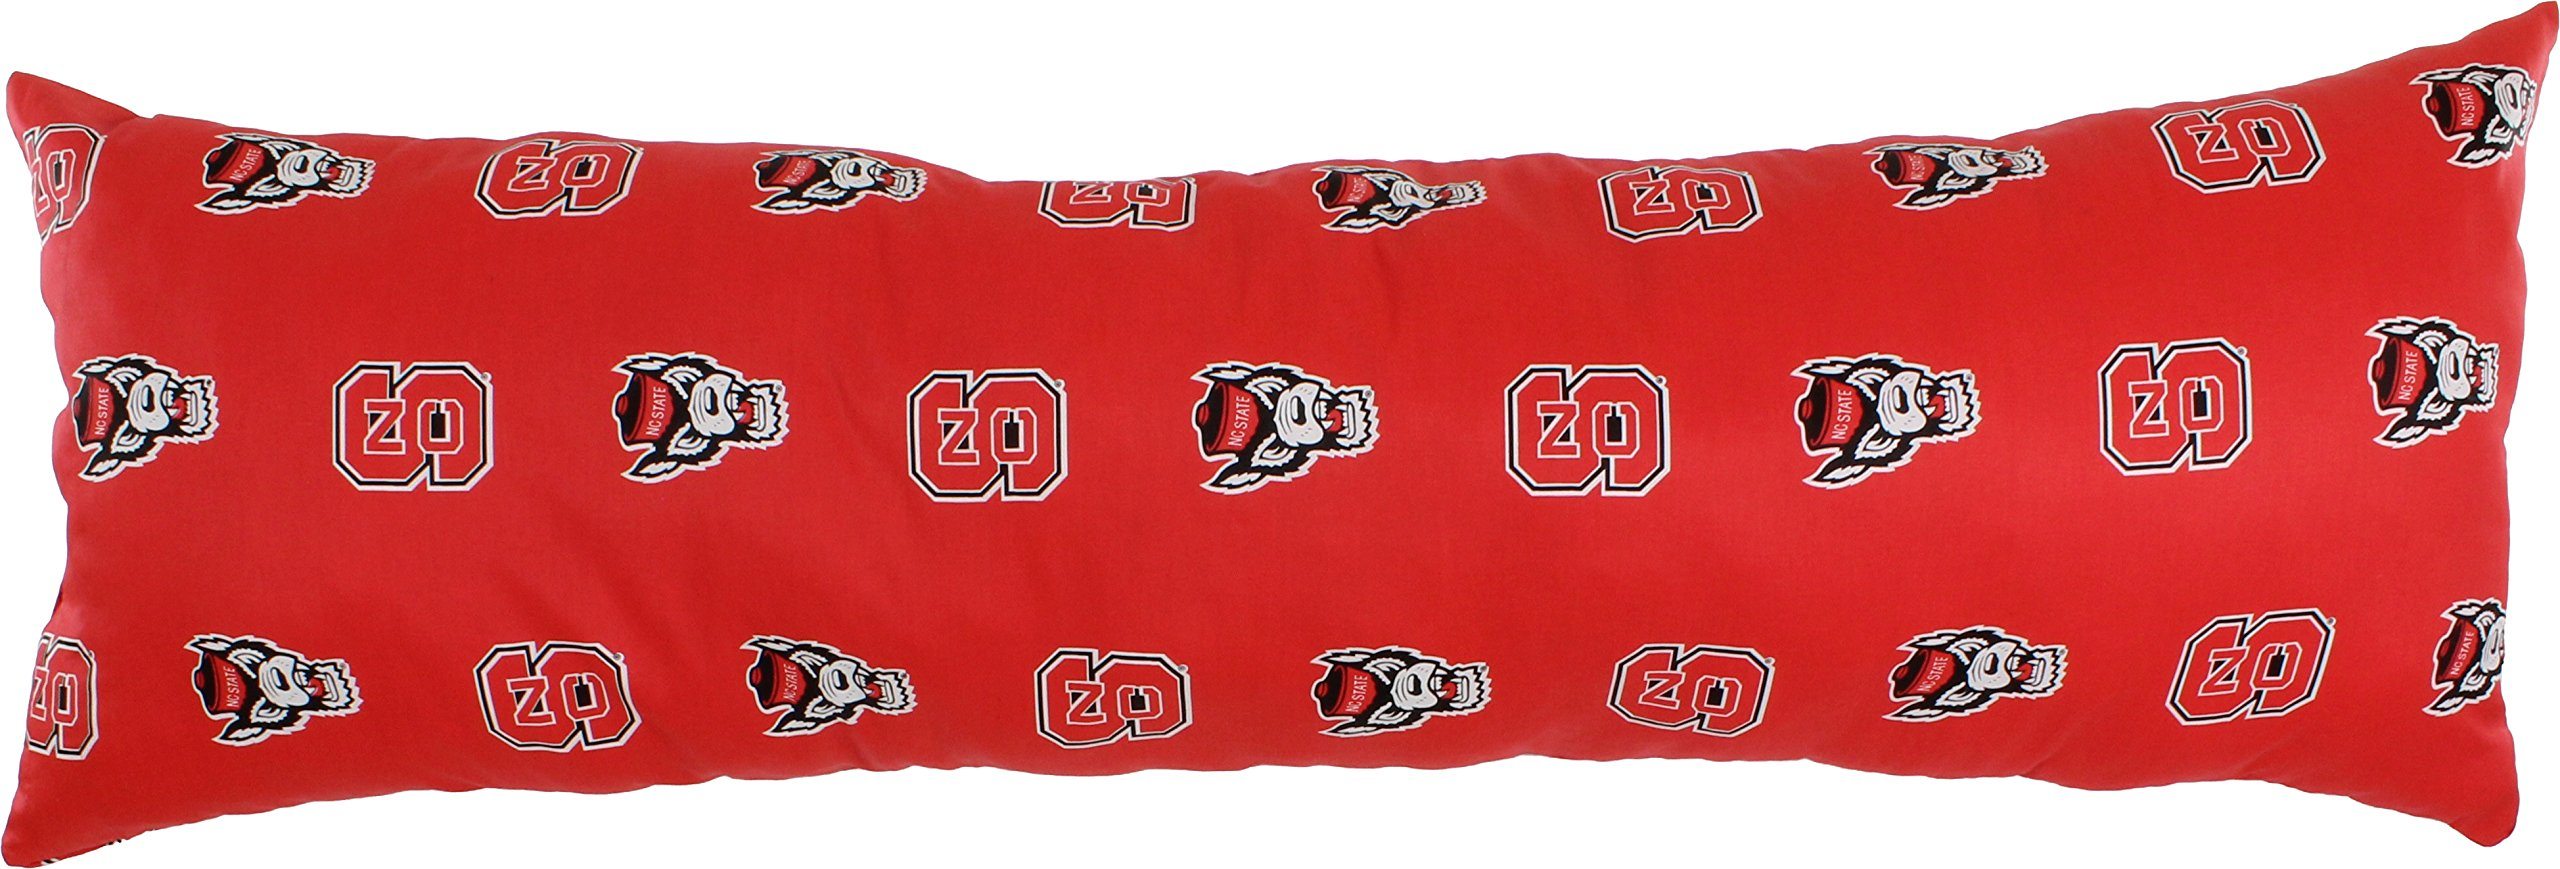 College Covers North Carolina State Wolfpack Printed Body Pillow, 20'' x 60''